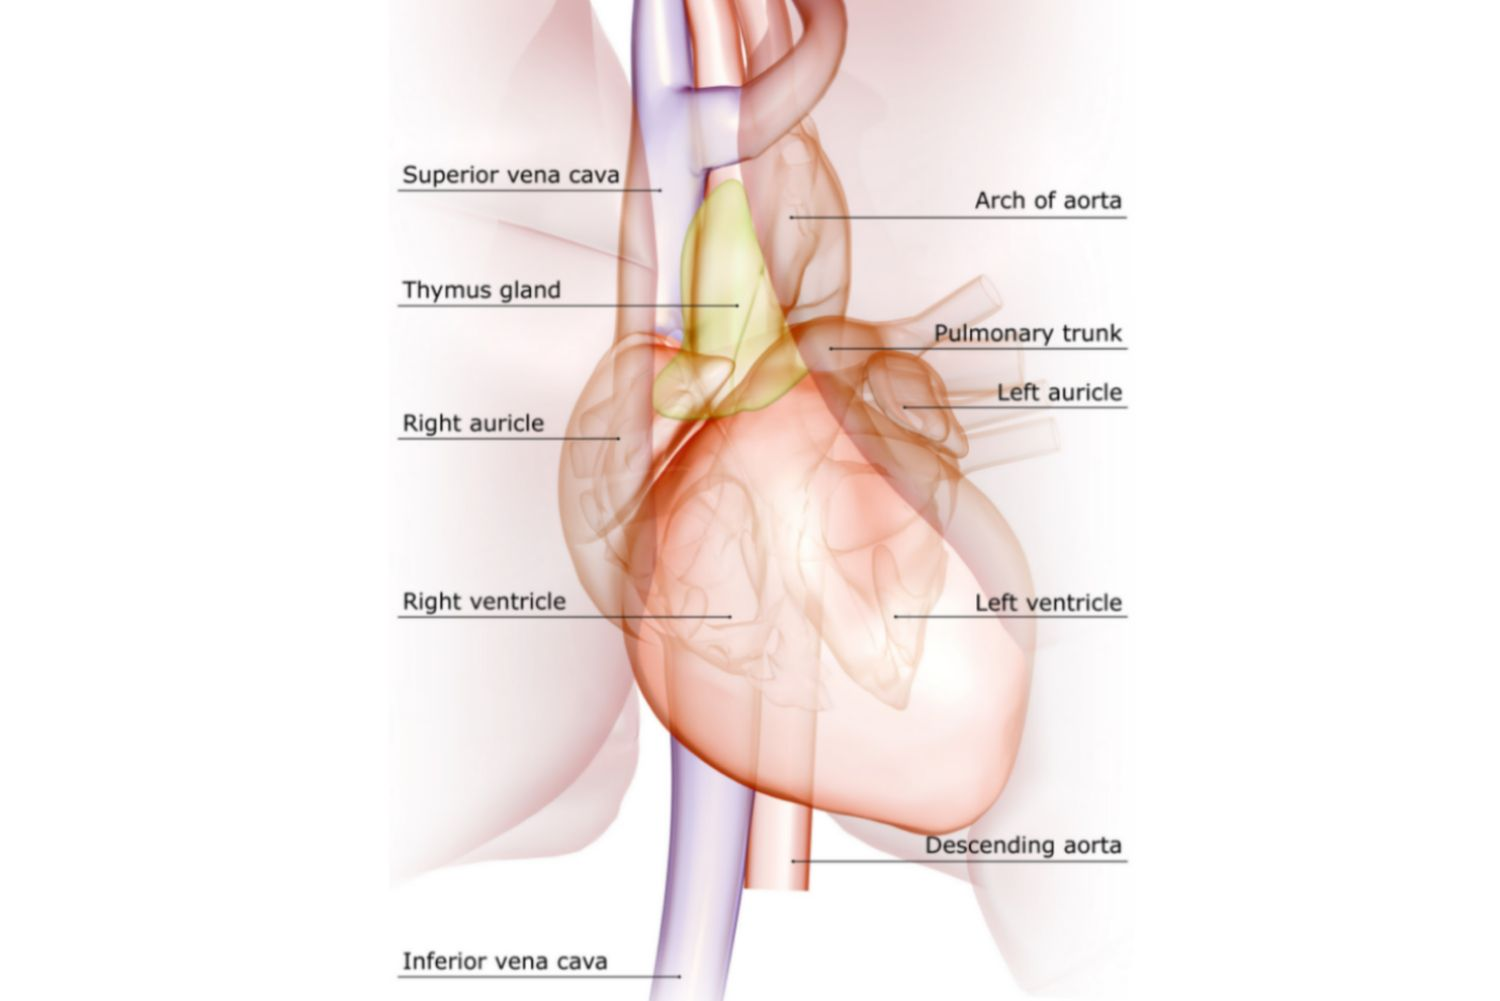 hight resolution of major veins and arteries of the heart labeled on a diagram